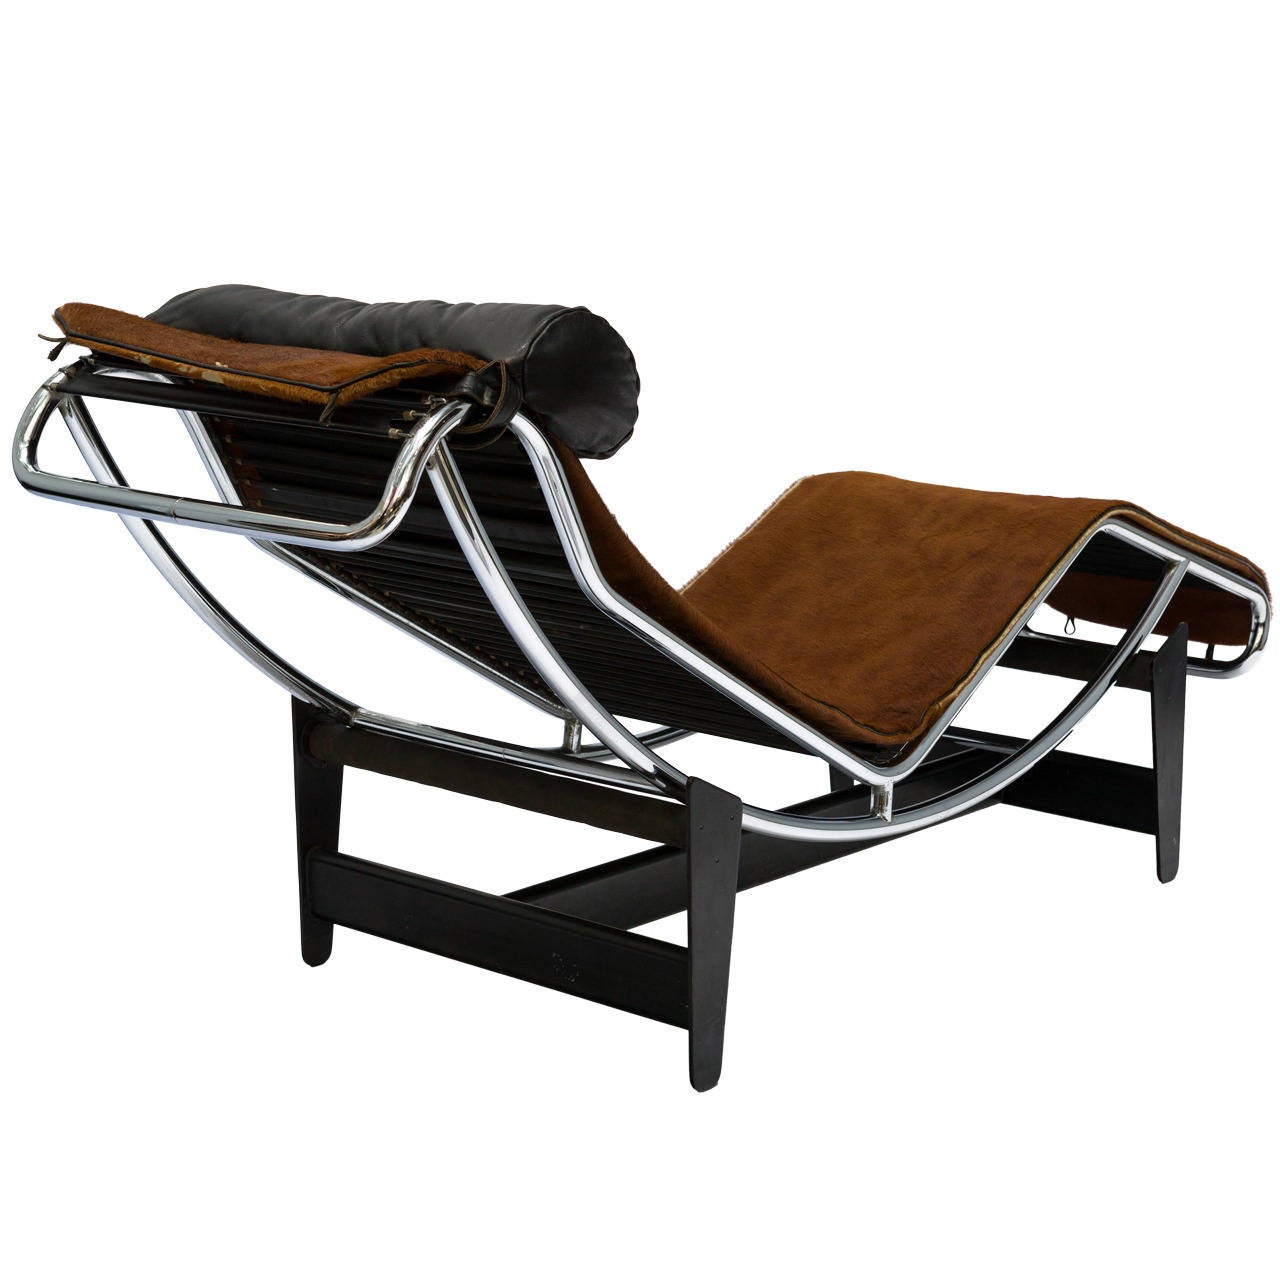 Le corbusier lc4 chaise lounge chair in cowhide for sale for Chaise longue design le corbusier